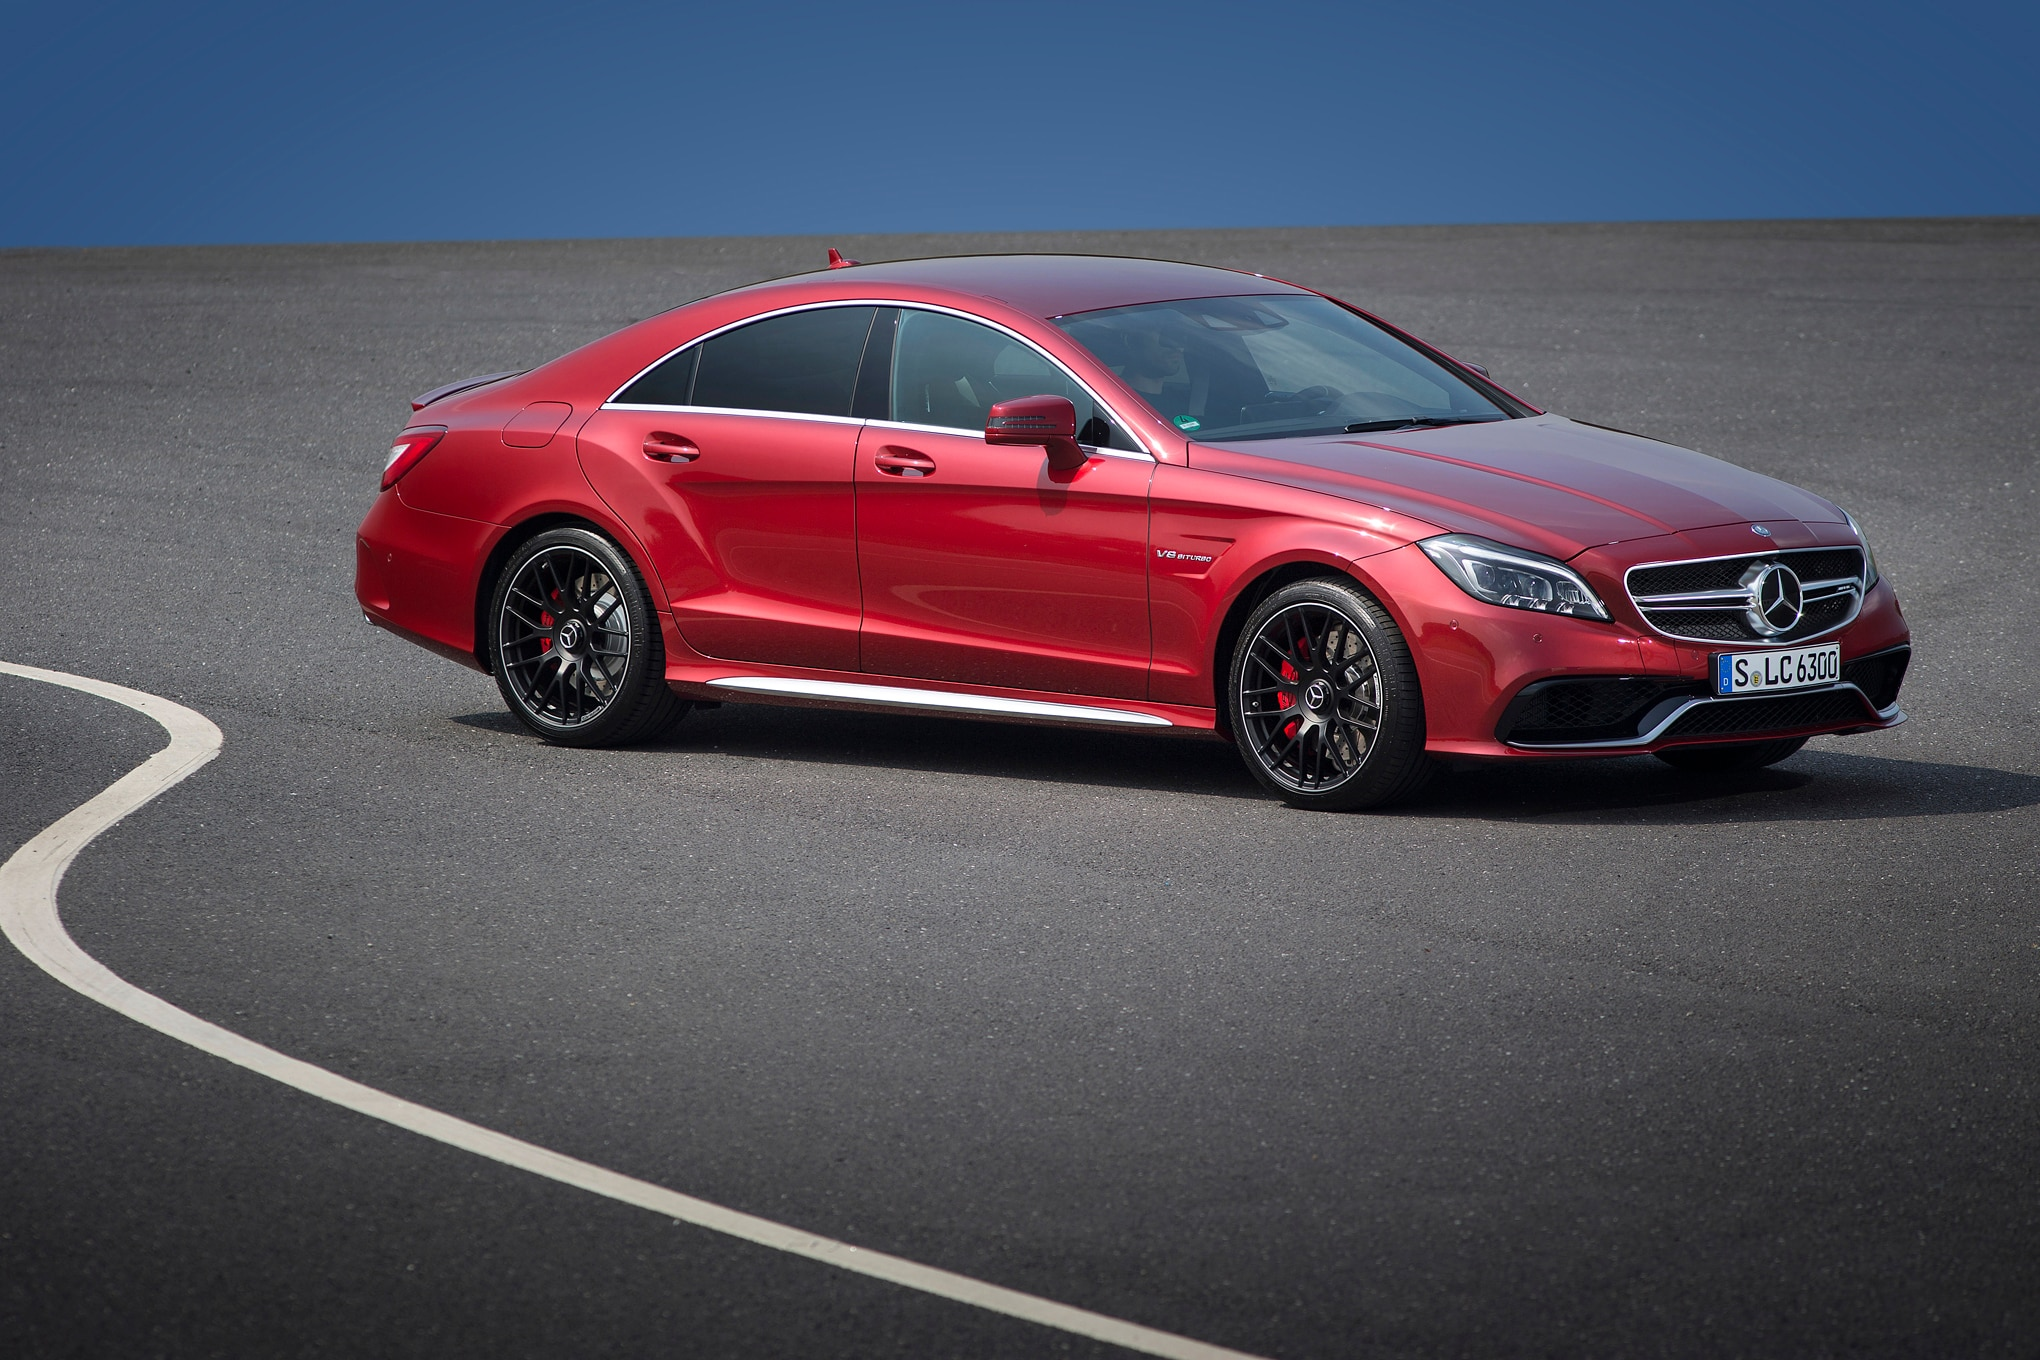 2015 mercedes benz cls debuts multibeam led headlights automobile. Black Bedroom Furniture Sets. Home Design Ideas